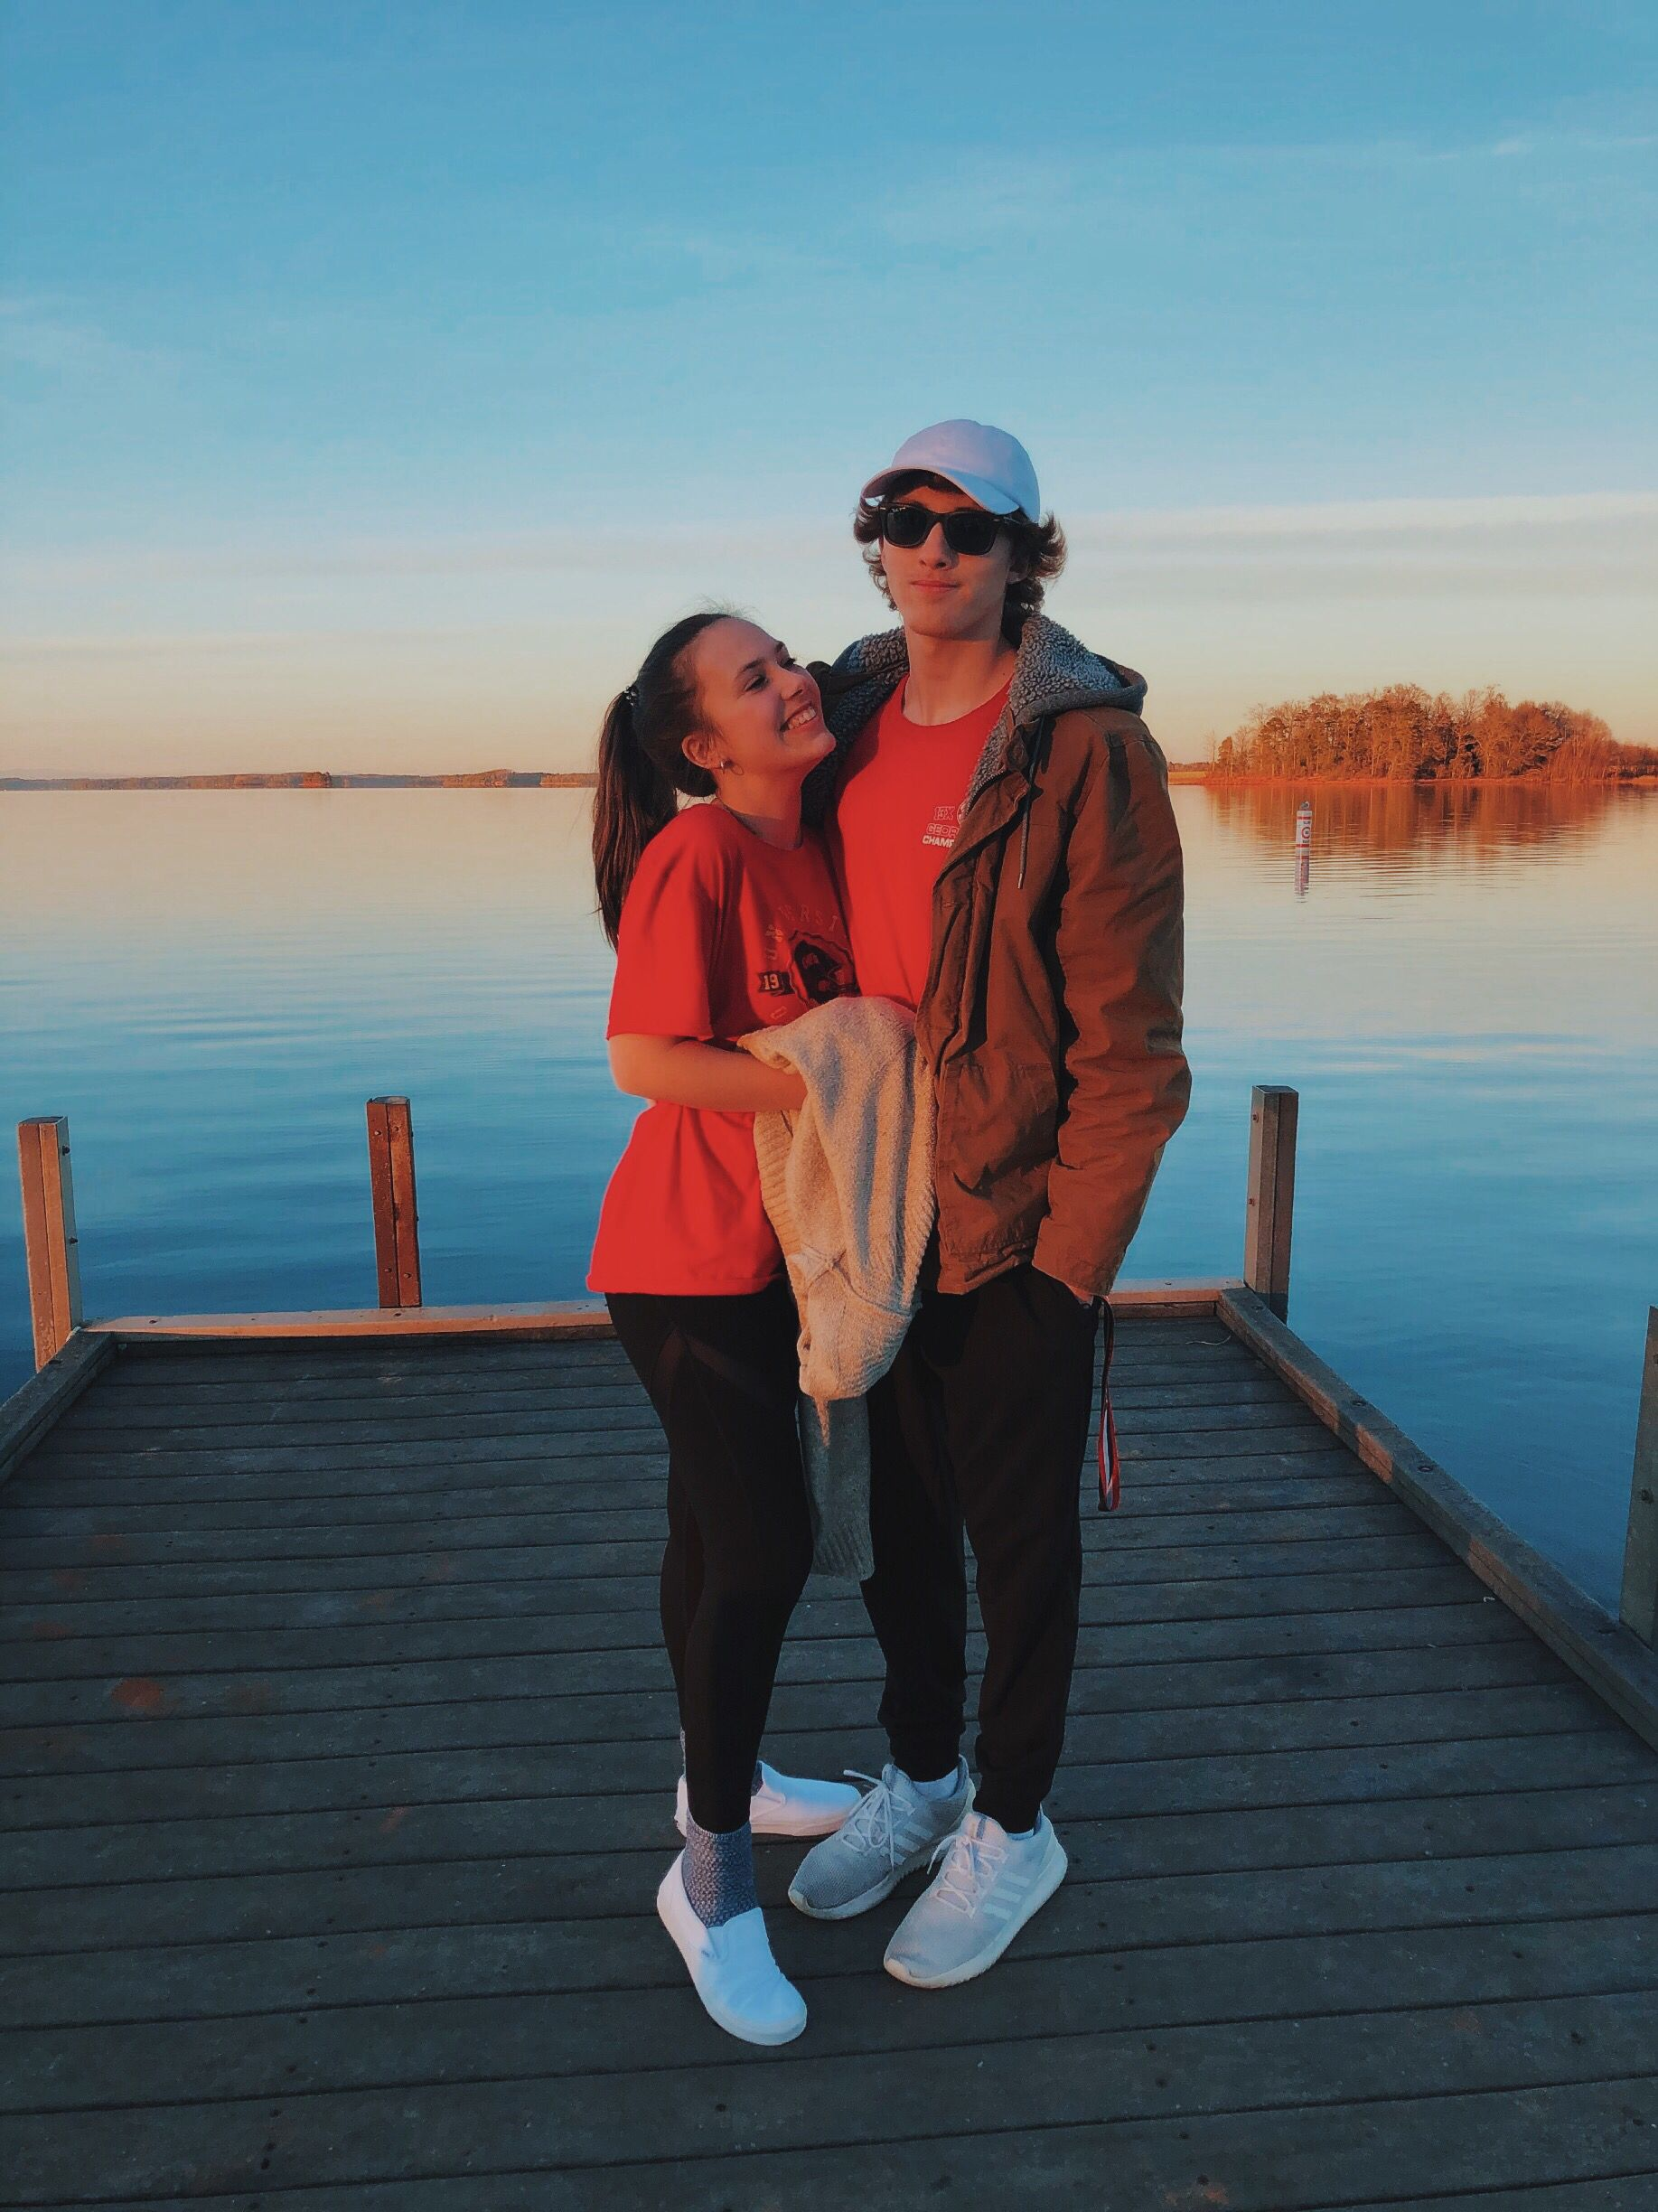 Couples Goals Couplegoals Love Happiness Relationship Happy Vsco Instagram Cute Summer Outfits Cute Couple Pictures Cute Couples Goals Couples Vibe